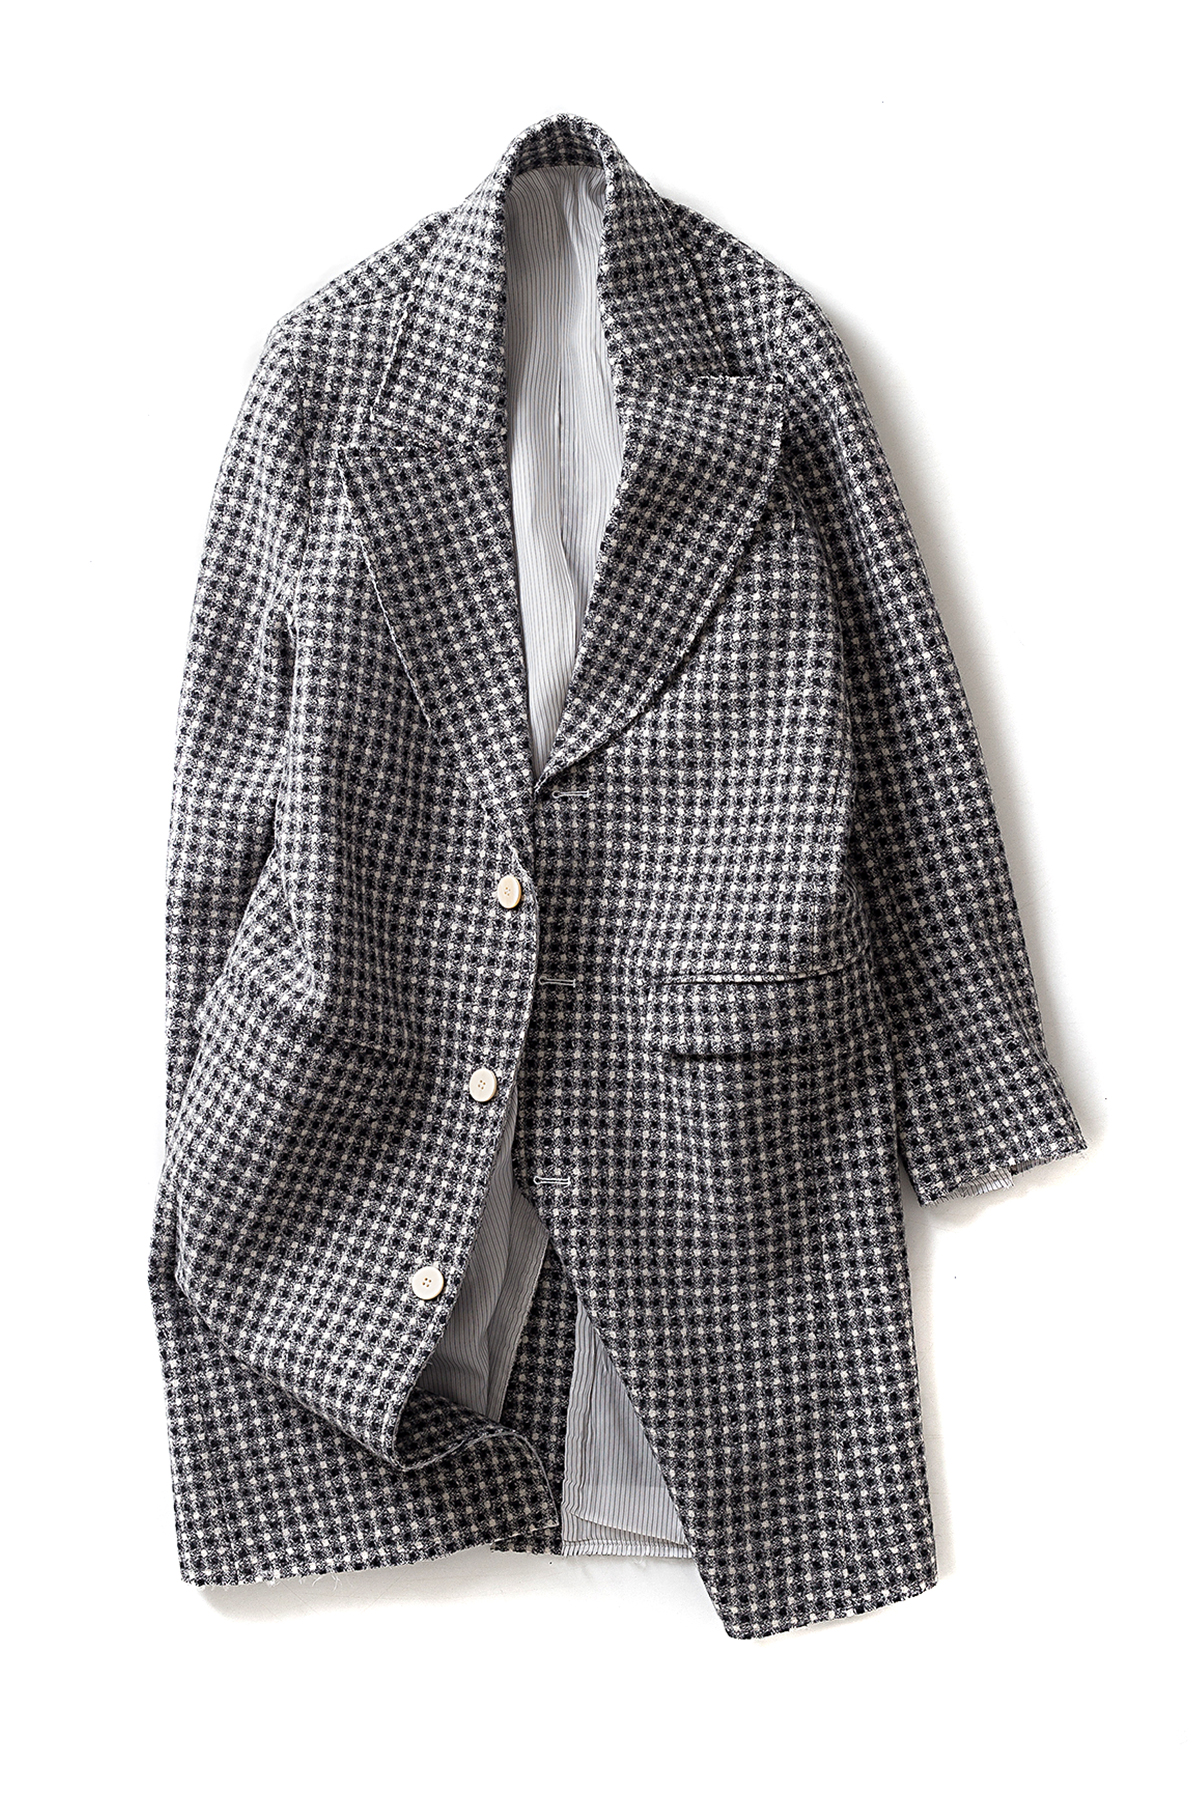 Ooparts : Notched-Lapel Wool Coat (White x Black Circle Check)